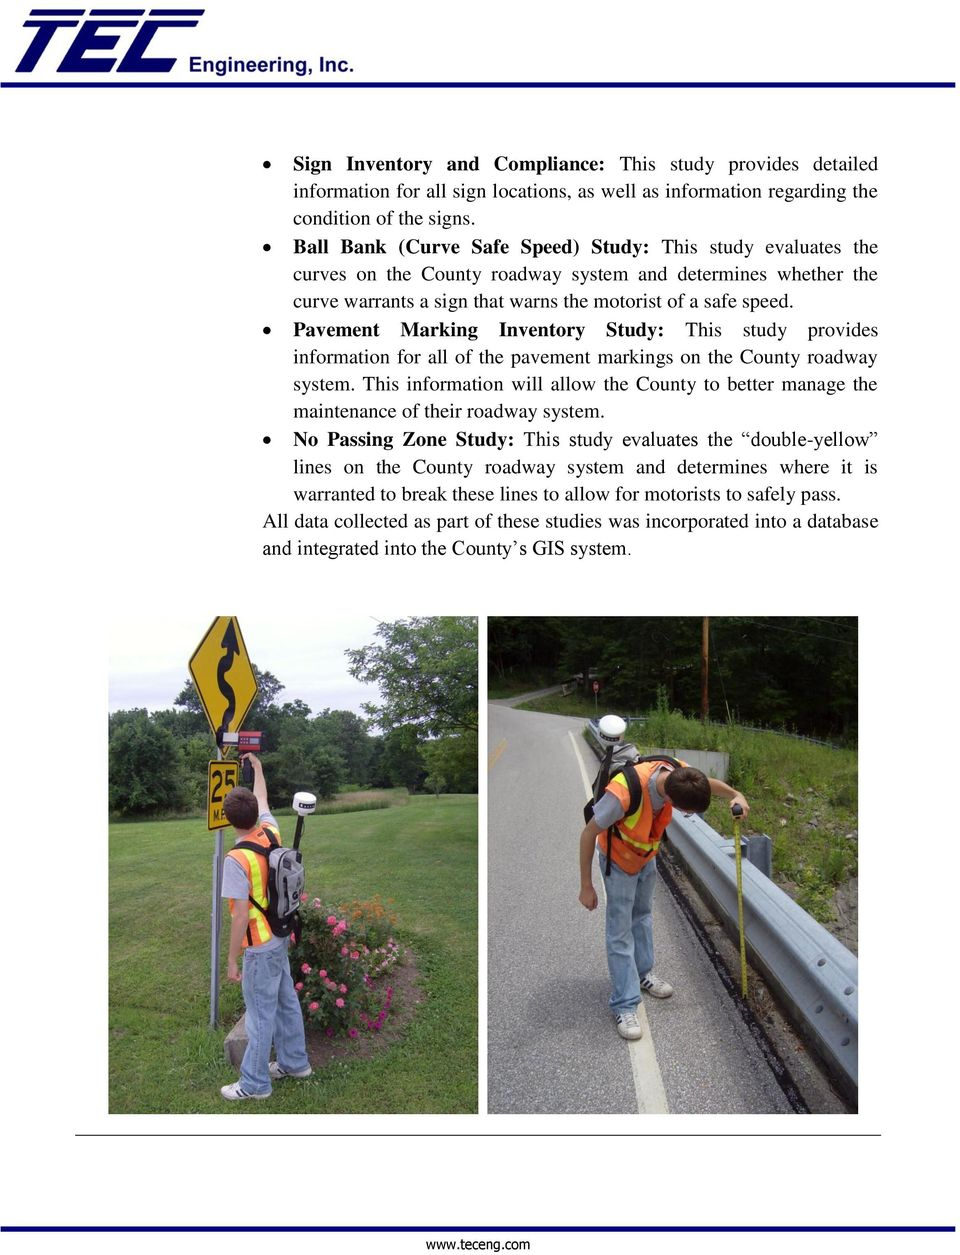 Pavement Marking Inventory Study: This study provides information for all of the pavement markings on the County roadway system.